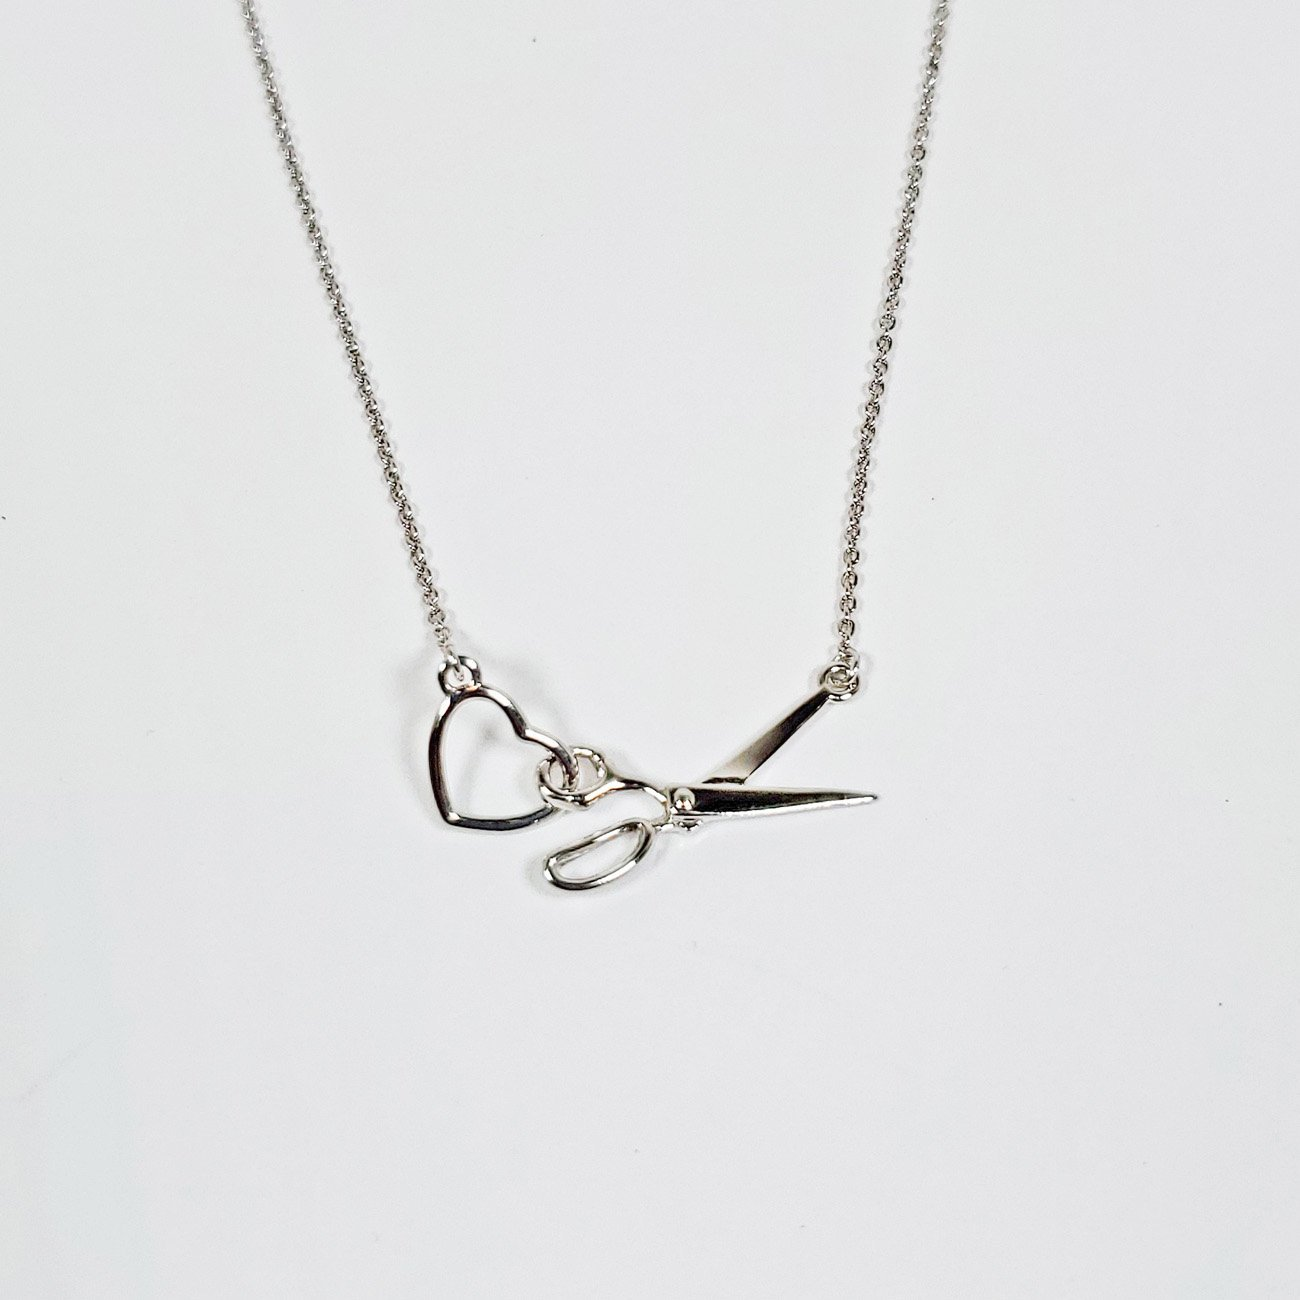 Scissors/Heart Charm Necklace Silver from the Quilt Spot